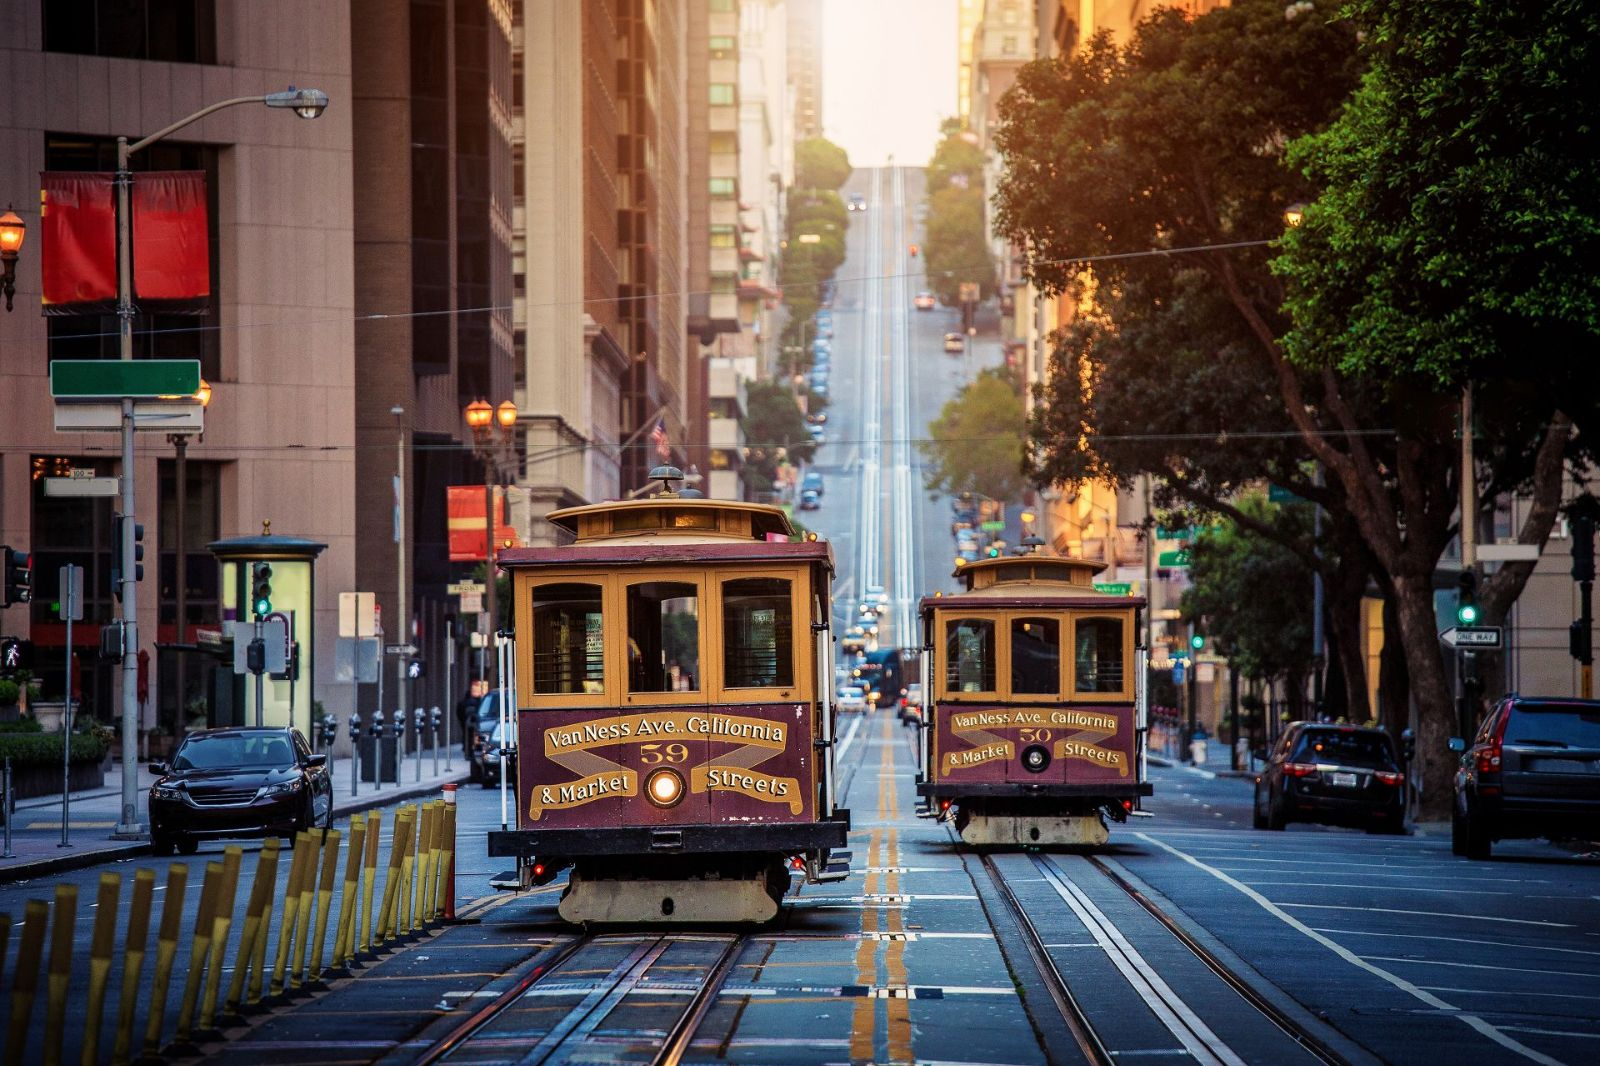 The world famous Cable Cars of San Francisco